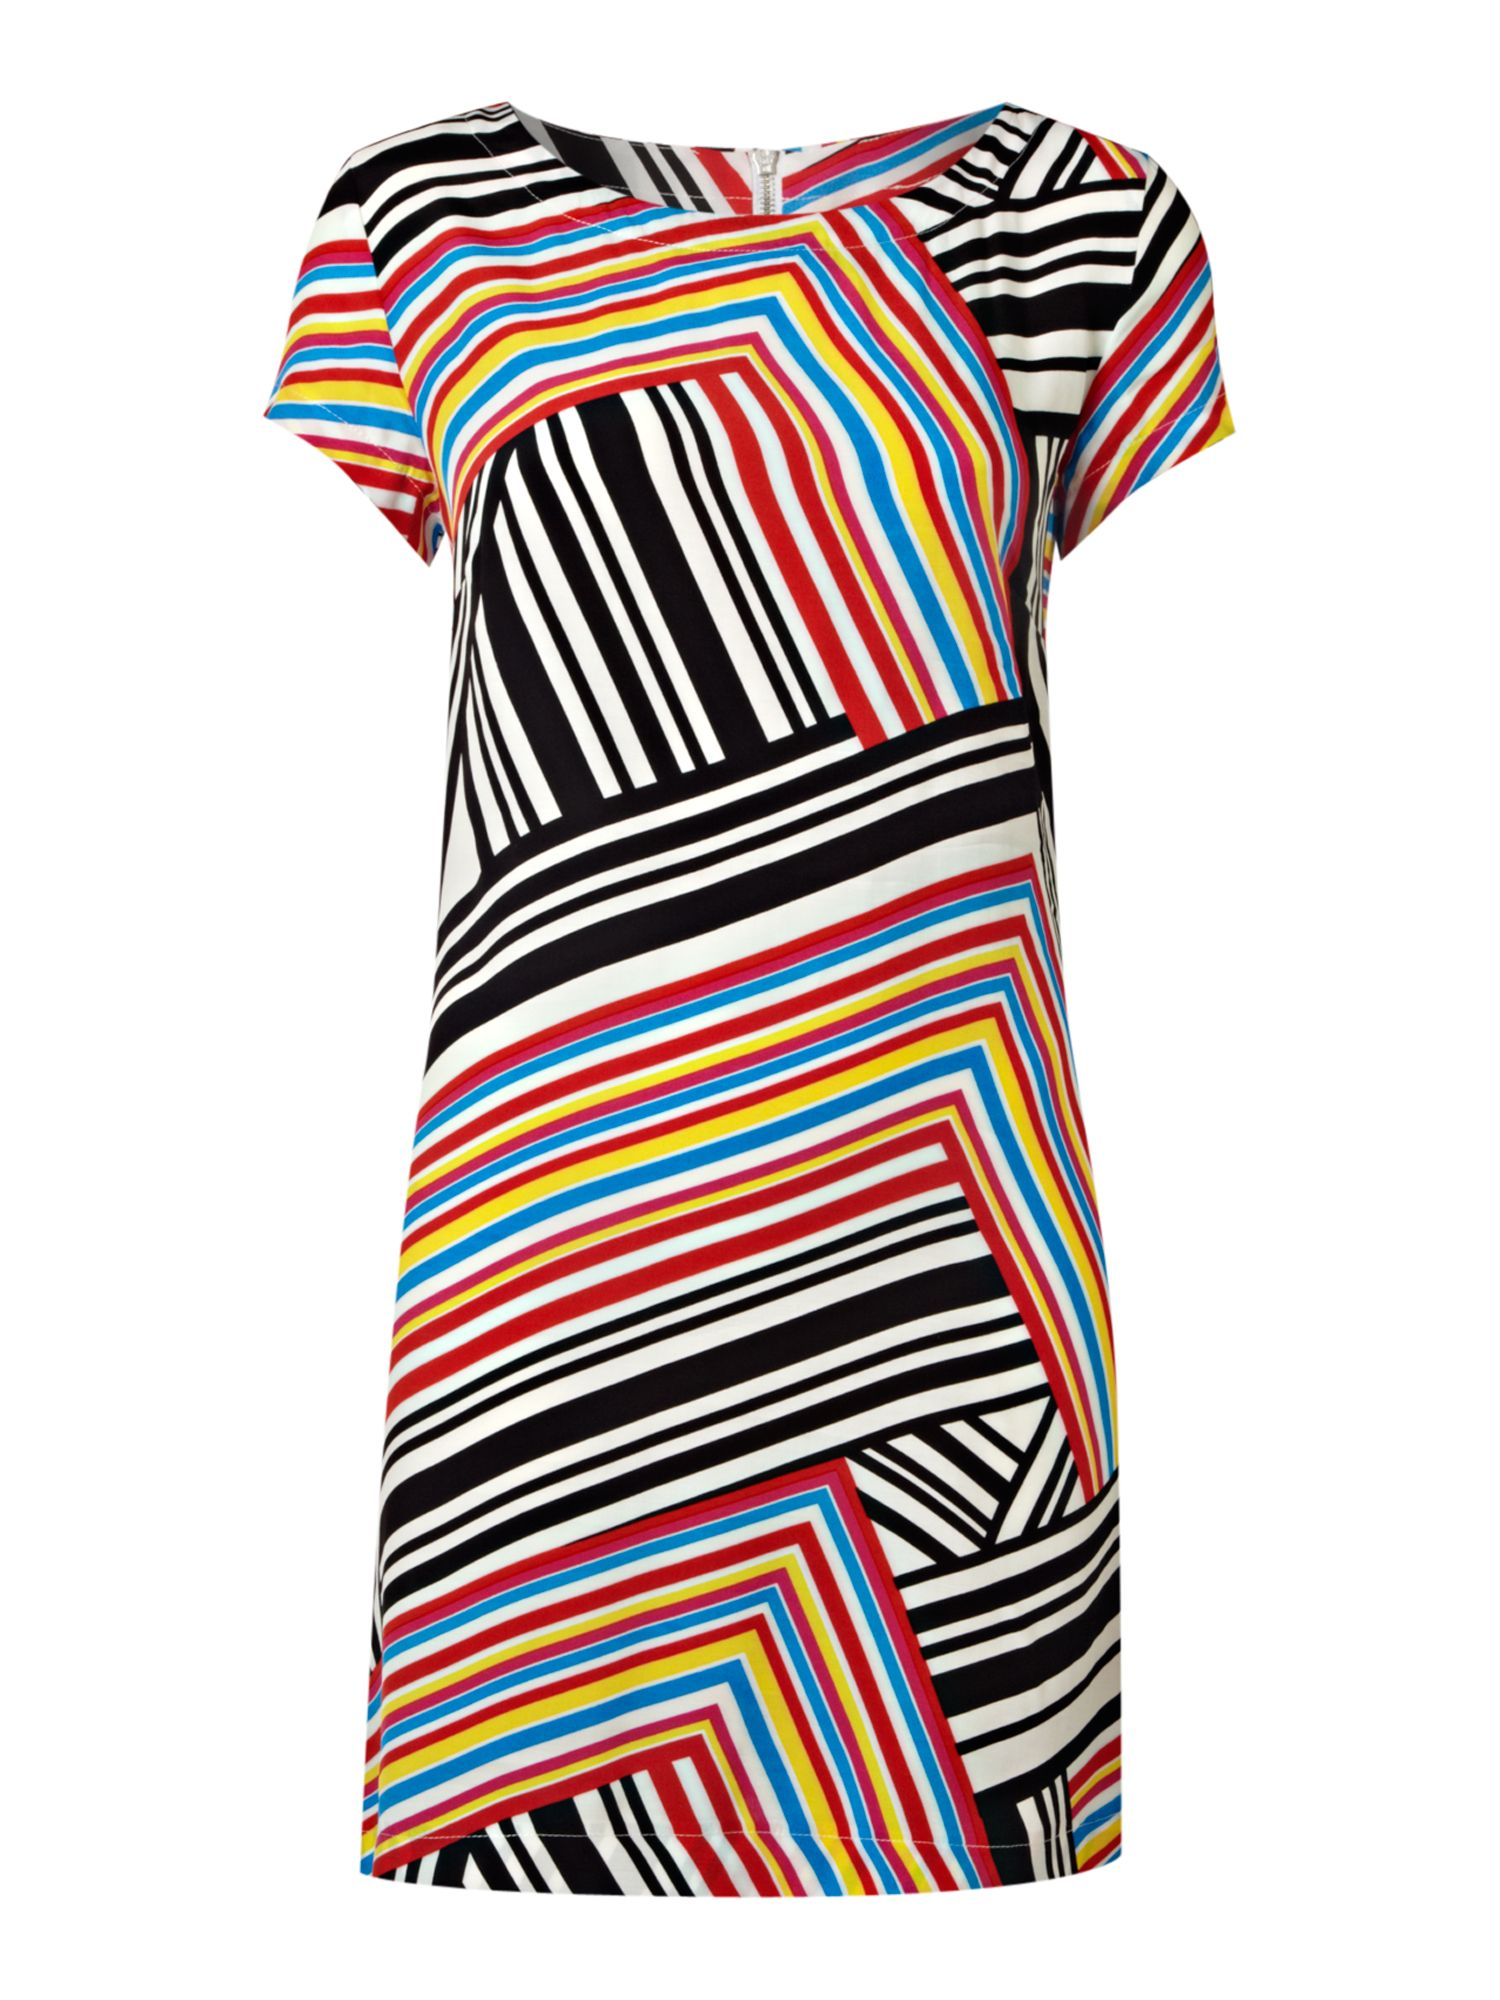 Therapy Striped t-shirt dress - Multi-Coloured product image